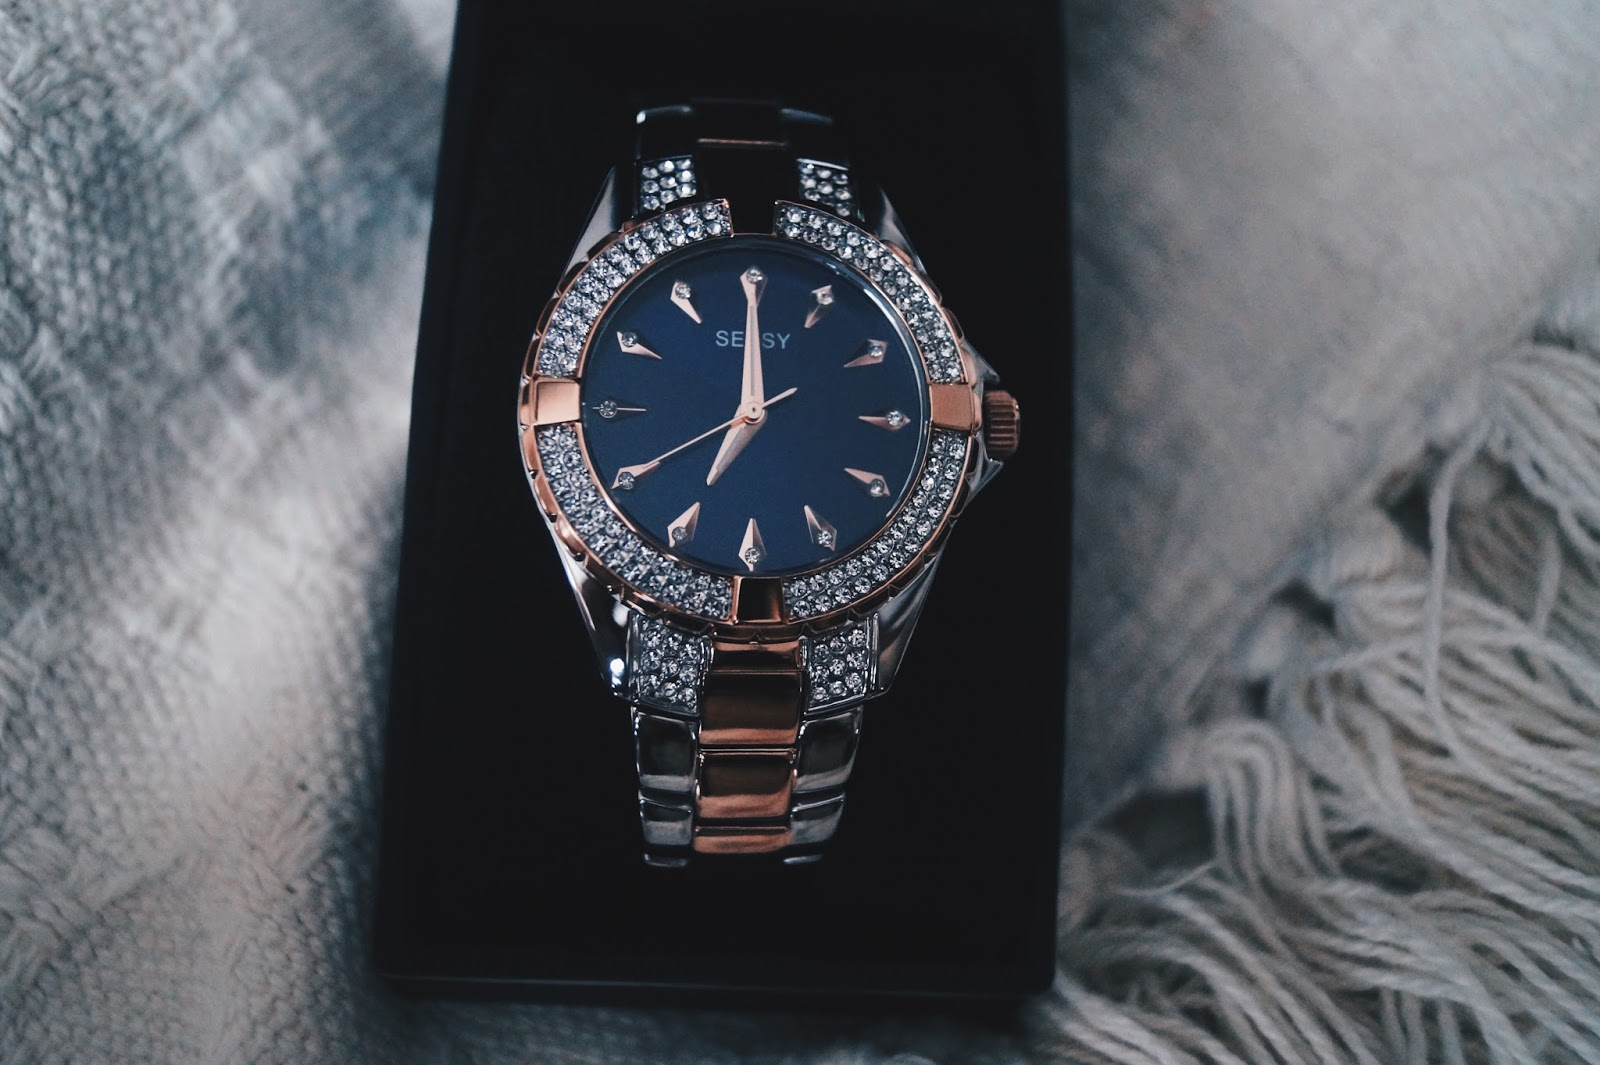 Ana Maddock- Seksy Intense by Sekonda- House of Watches- houseofwatches.co.uk